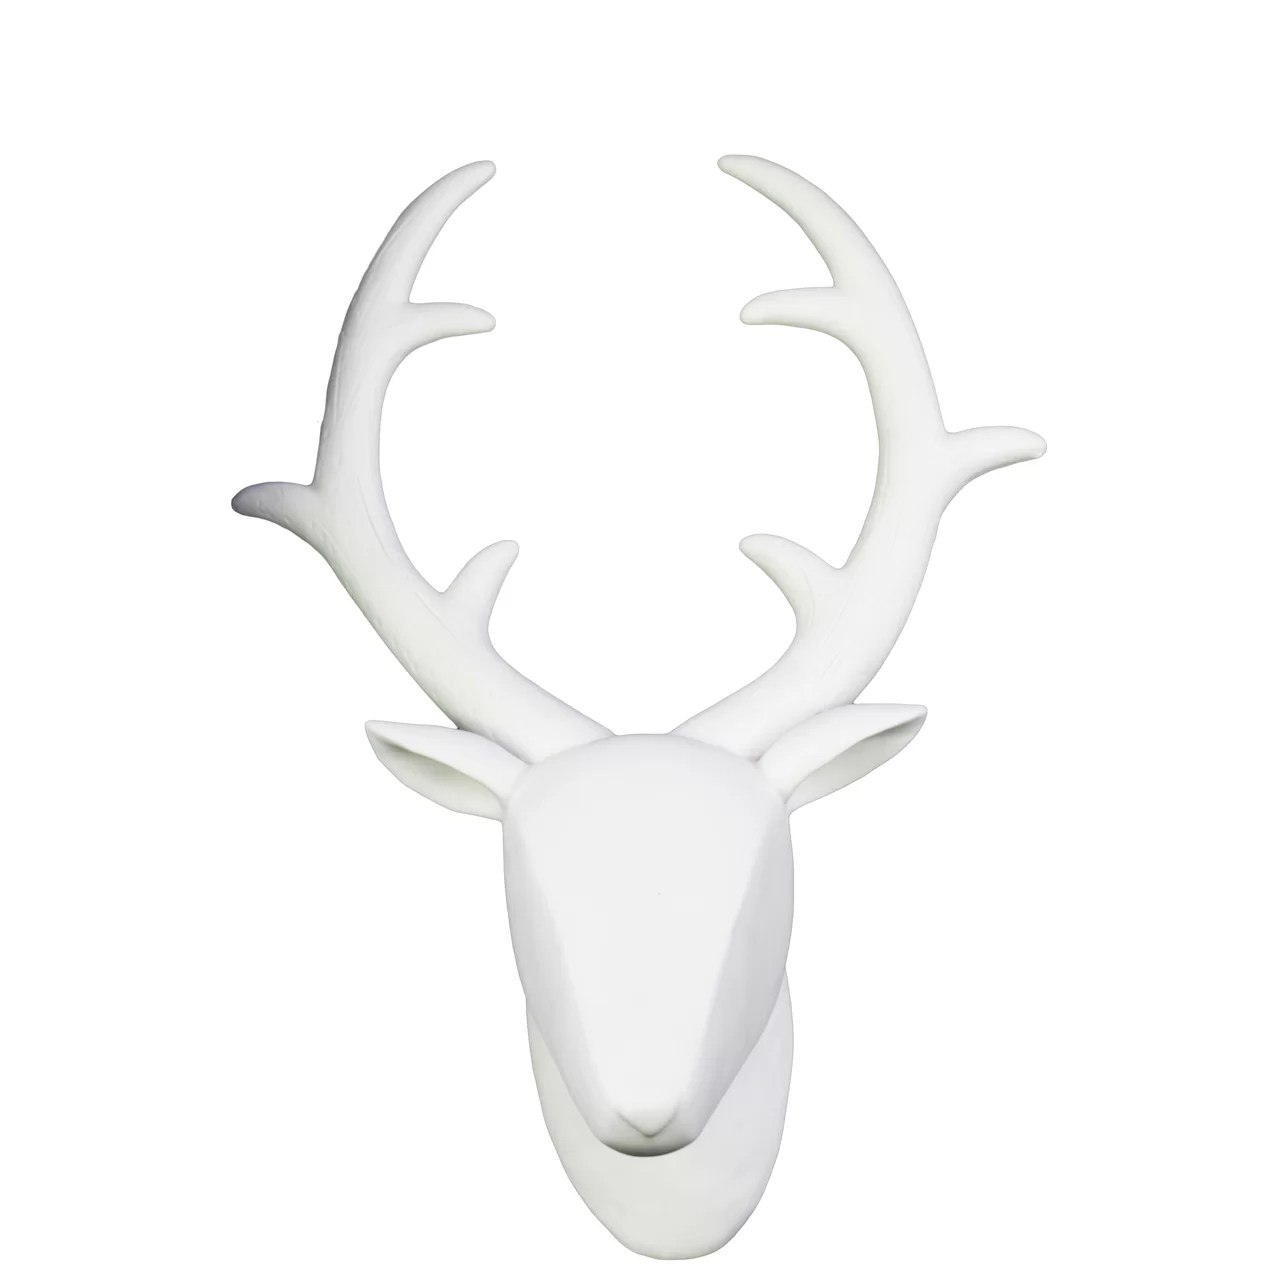 White Porcelain Deer Head Porcelain Wall Mount Deer Head Wayfair